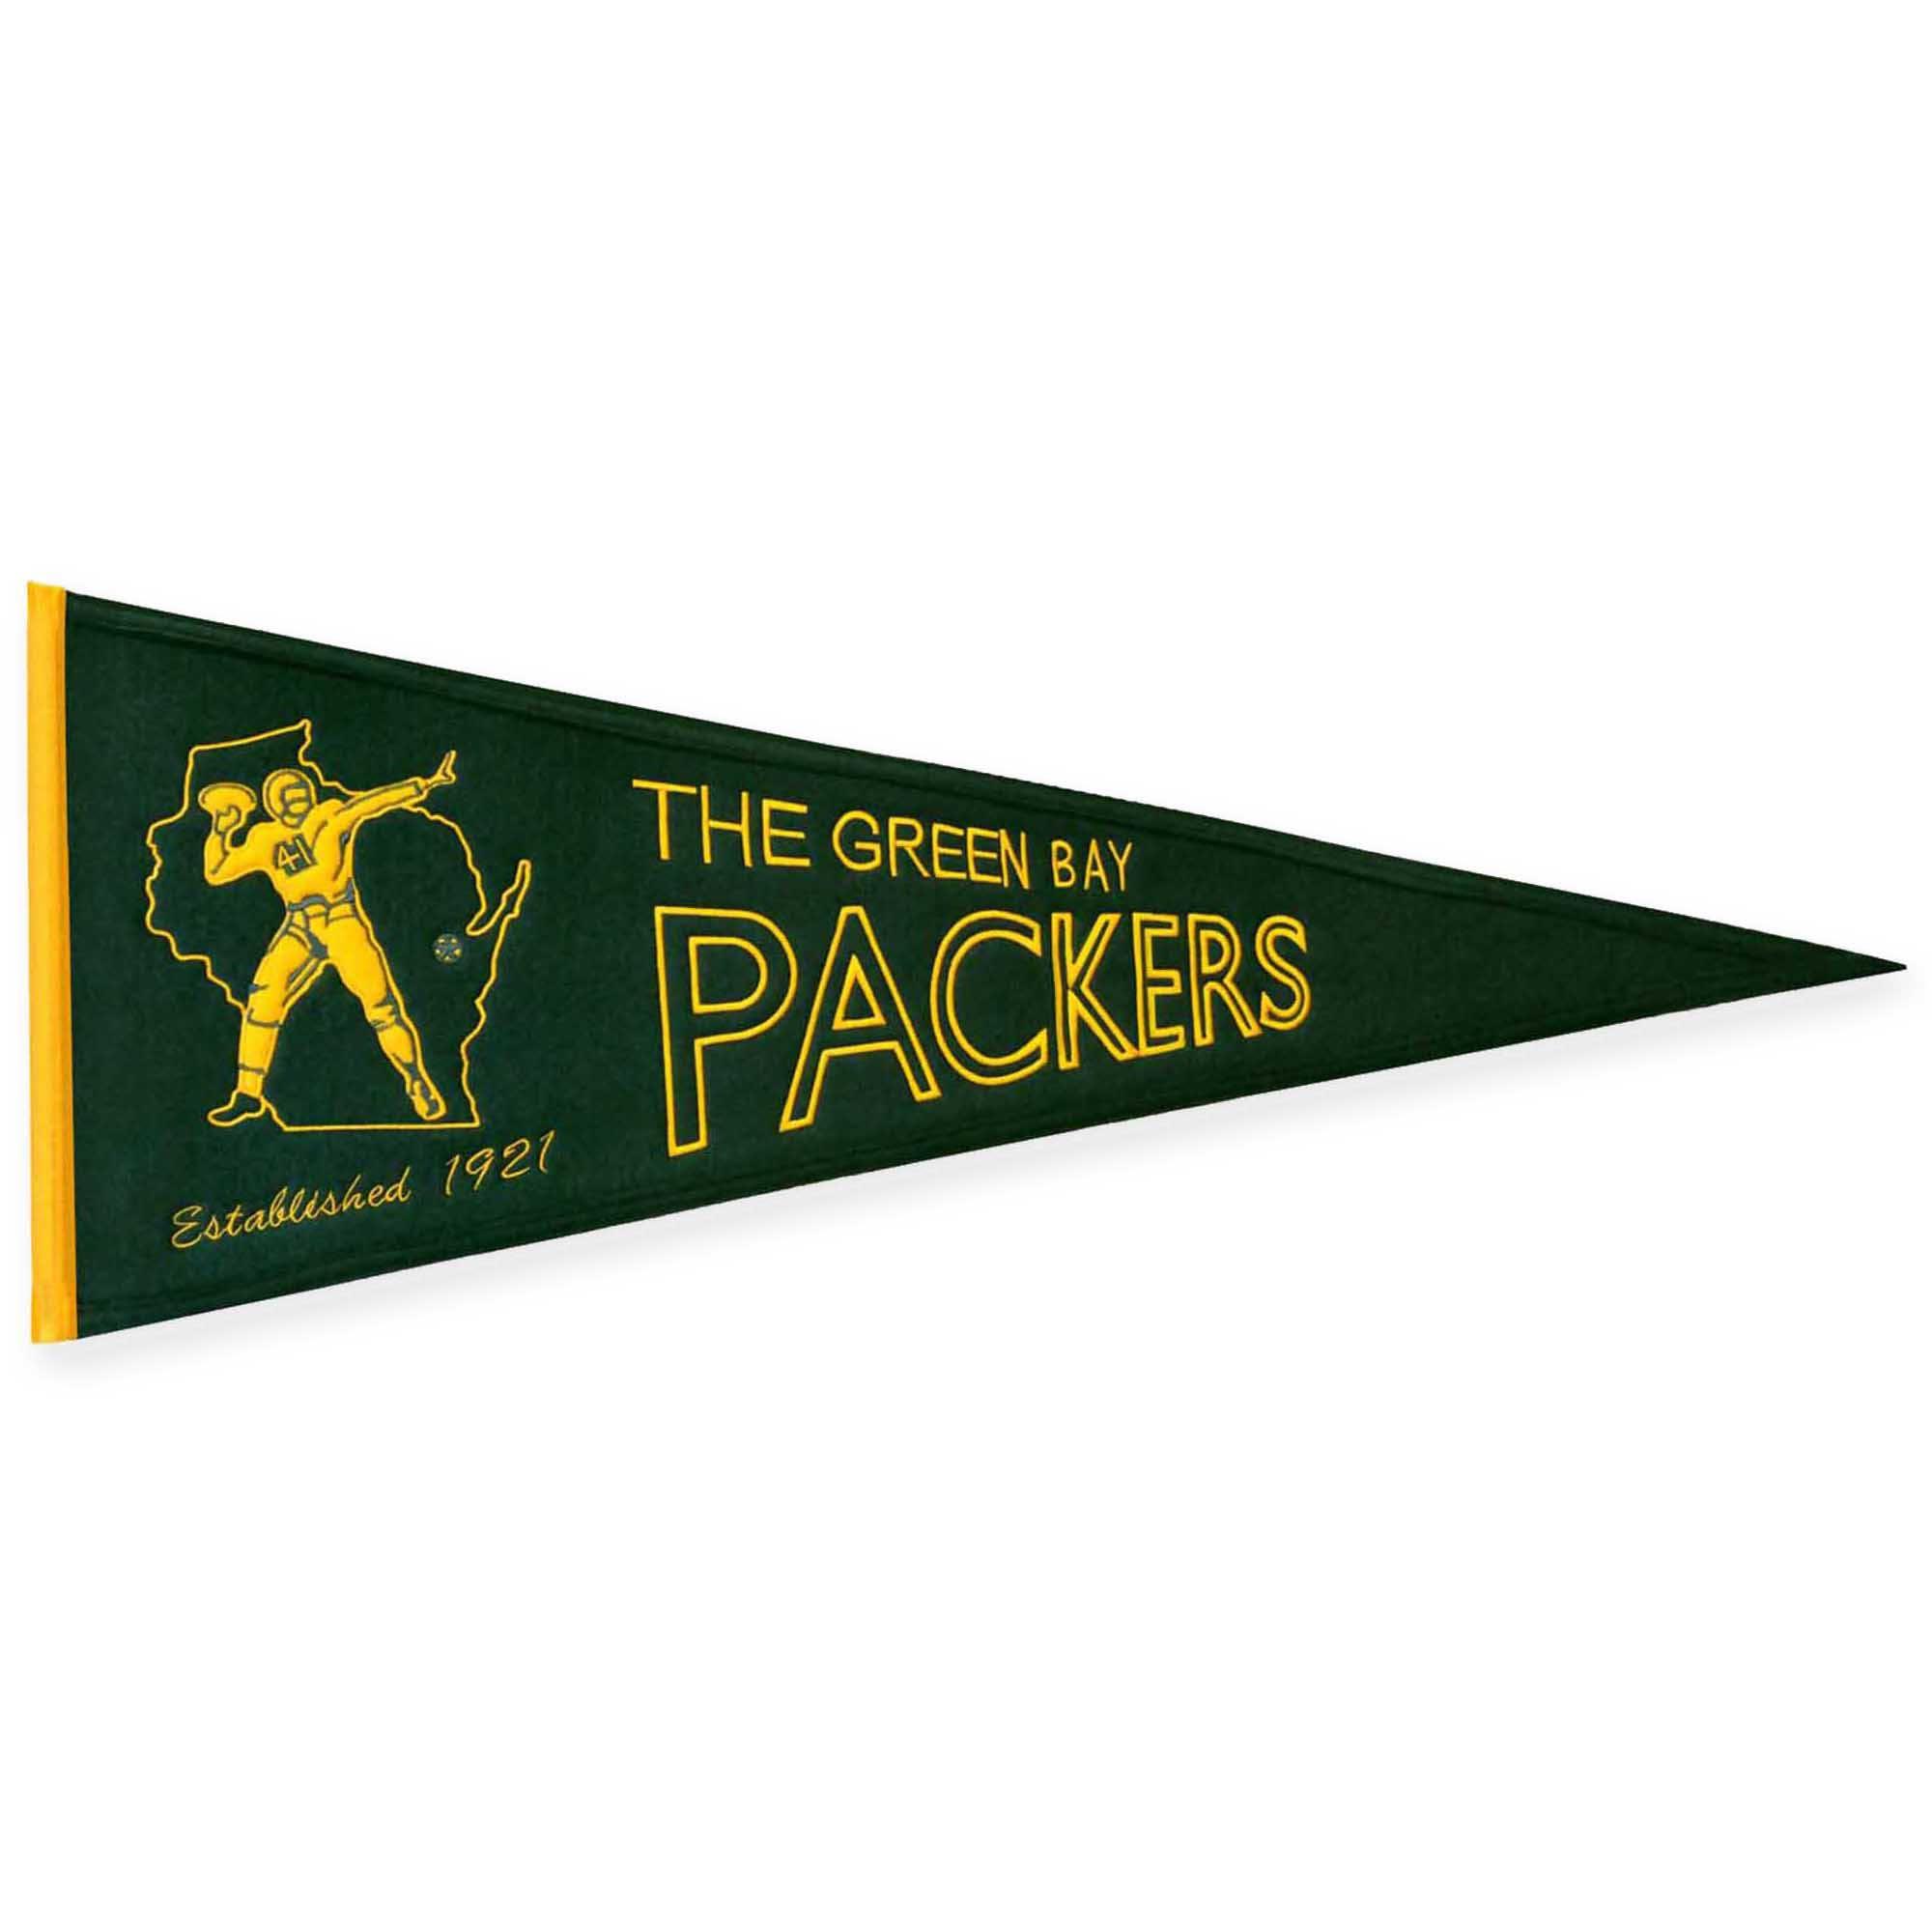 Nfl Green Bay Packers Throwback Banner Nfl Packers Nfl Green Bay Green Bay Packers